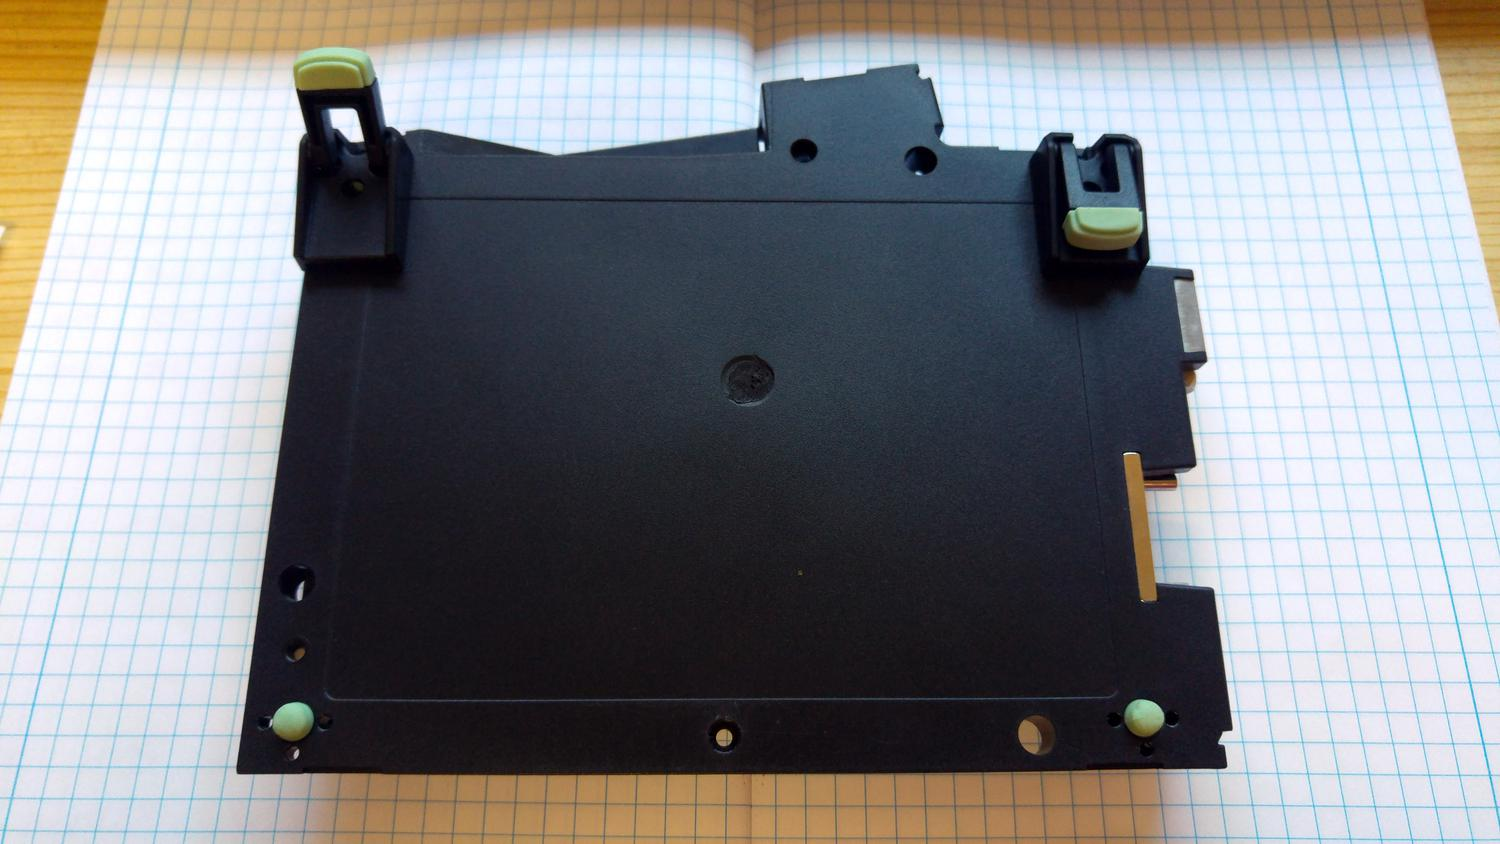 Ultimate Hacking Keyboard - PCB Redesign and Firmware Progress